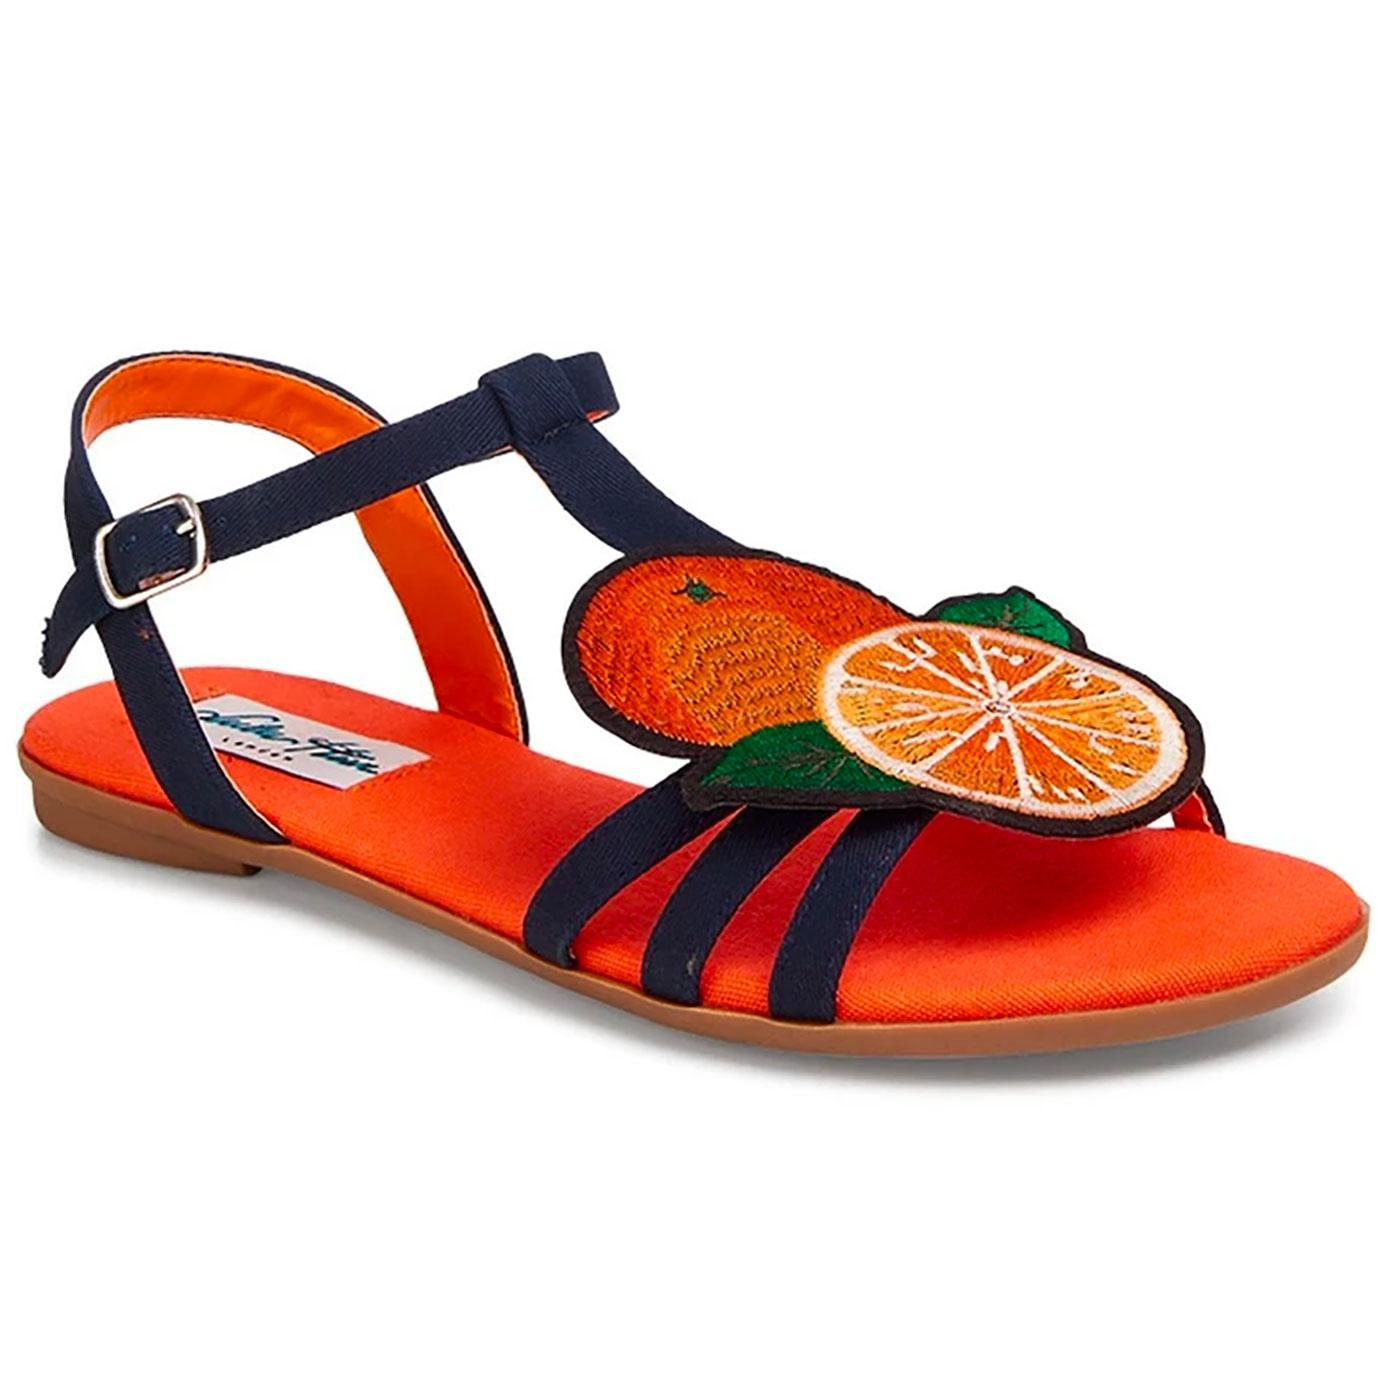 Lottie LULU HUN Retro 60s Orange Strappy Sandals